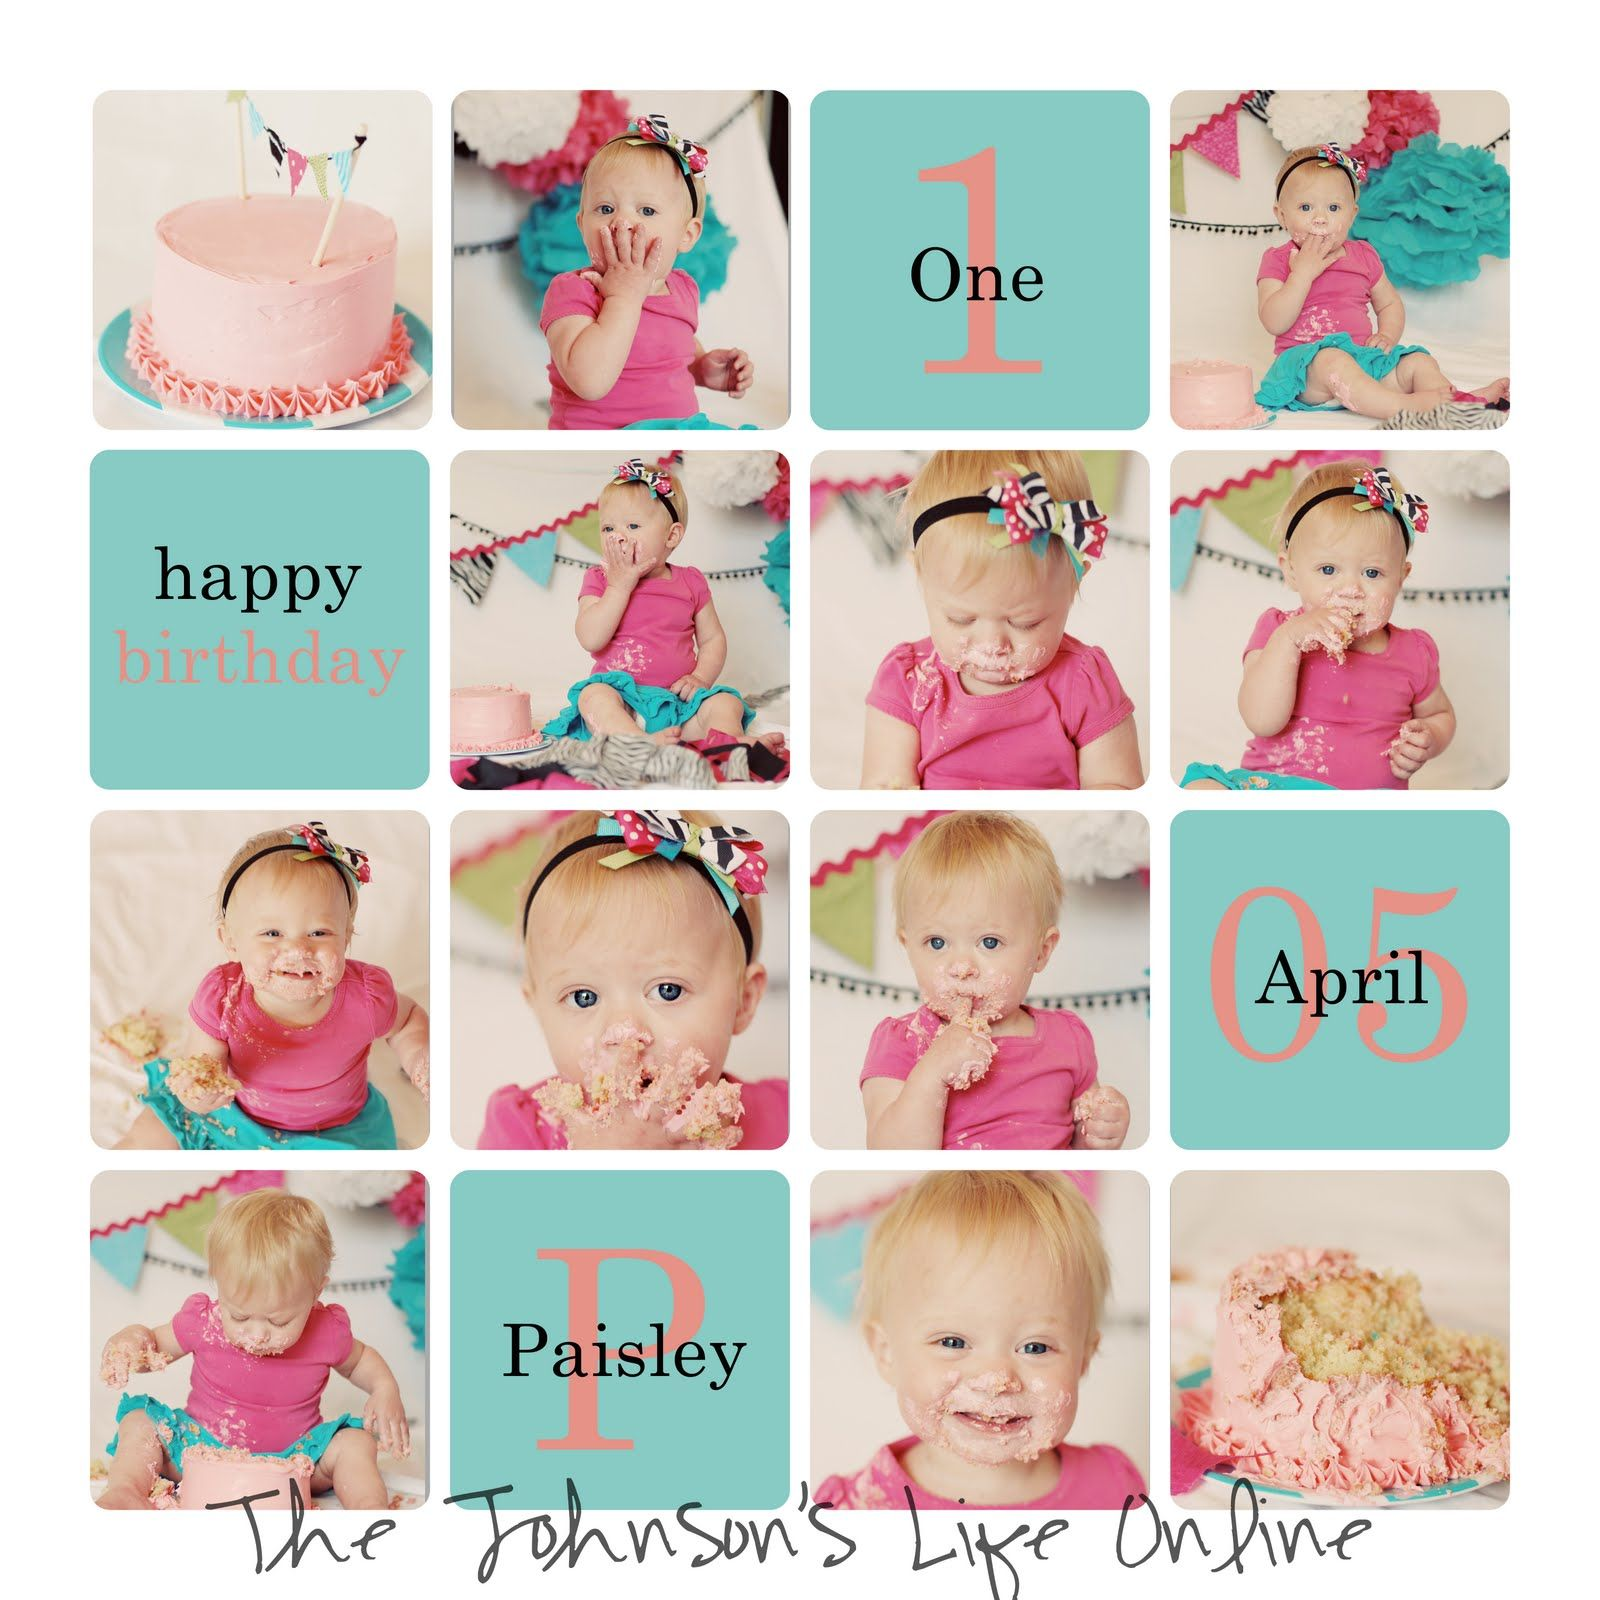 first birthday picture collage ideas ; a9466c47d0471893d39790b601b0af58